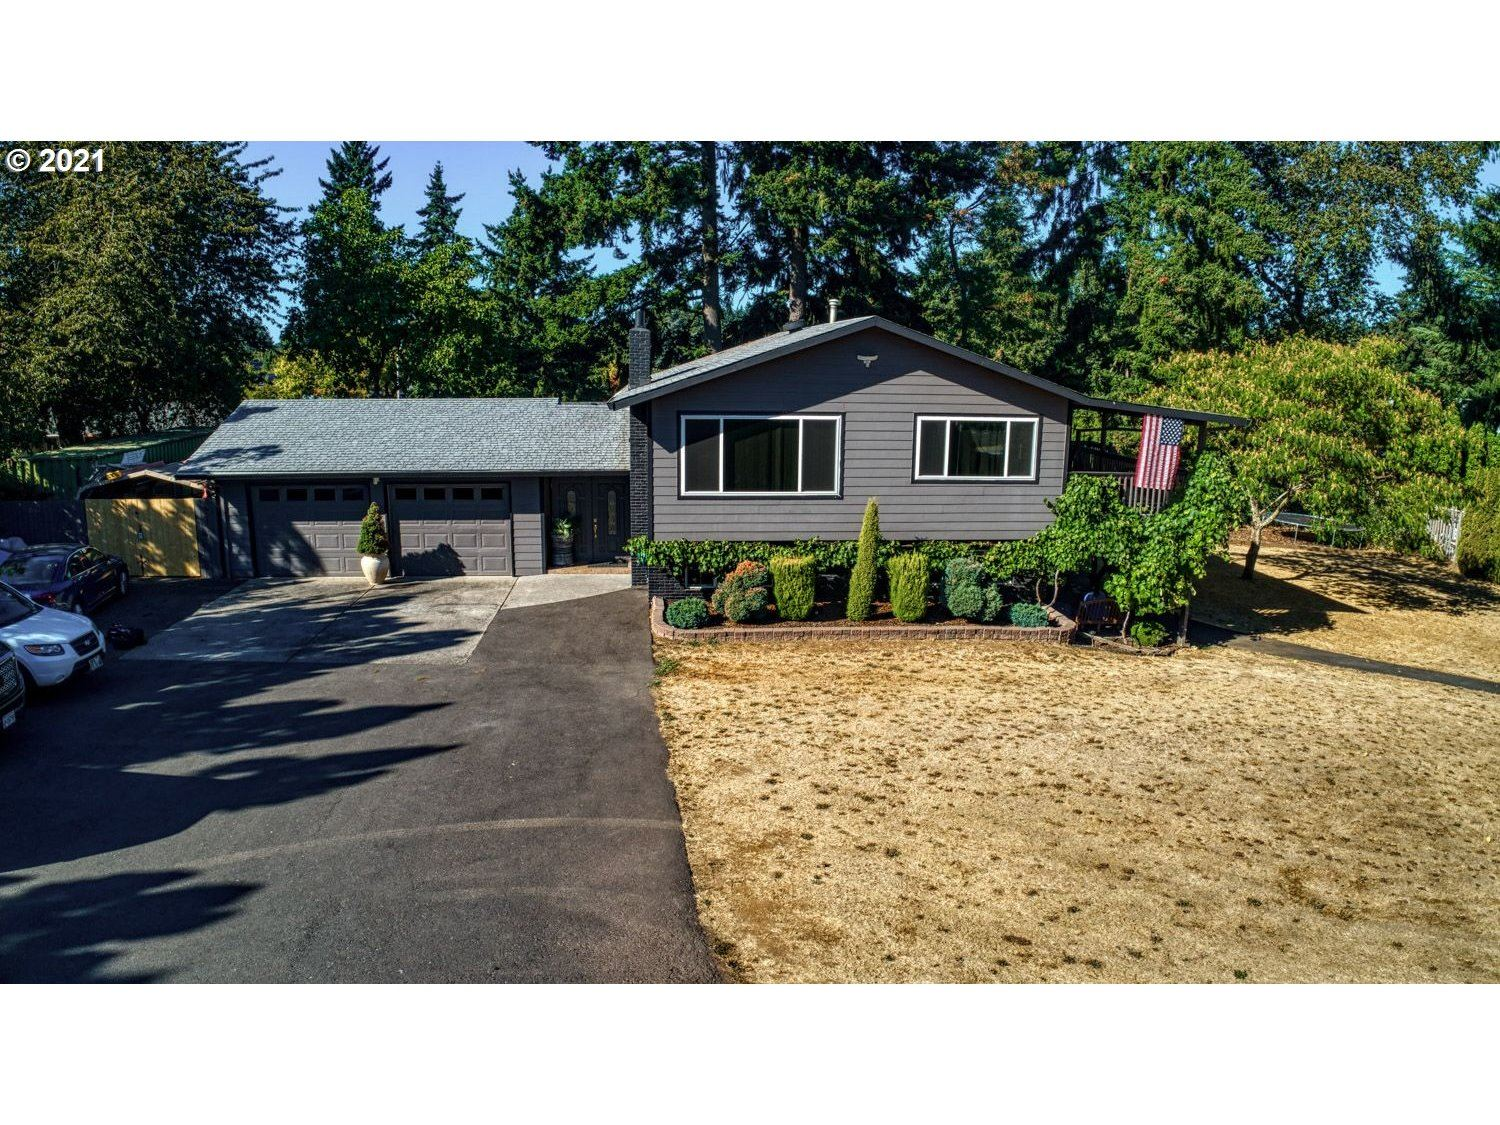 331 SE 136TH AVE, Portland, OR 97233 - MLS#: 21181299